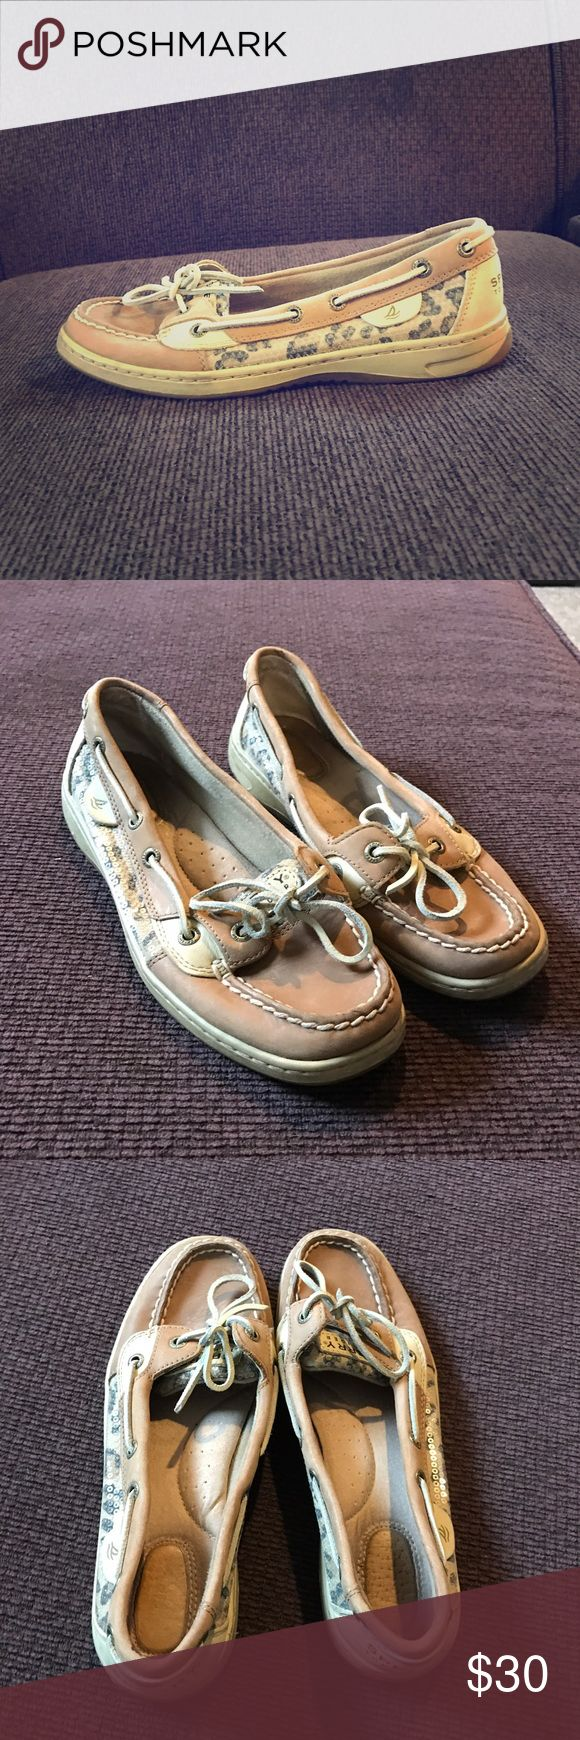 Cheetah Print Sperry Boat Shoes Boat shoes with cheetah print and sequin detail ❤️ Sperry Shoes